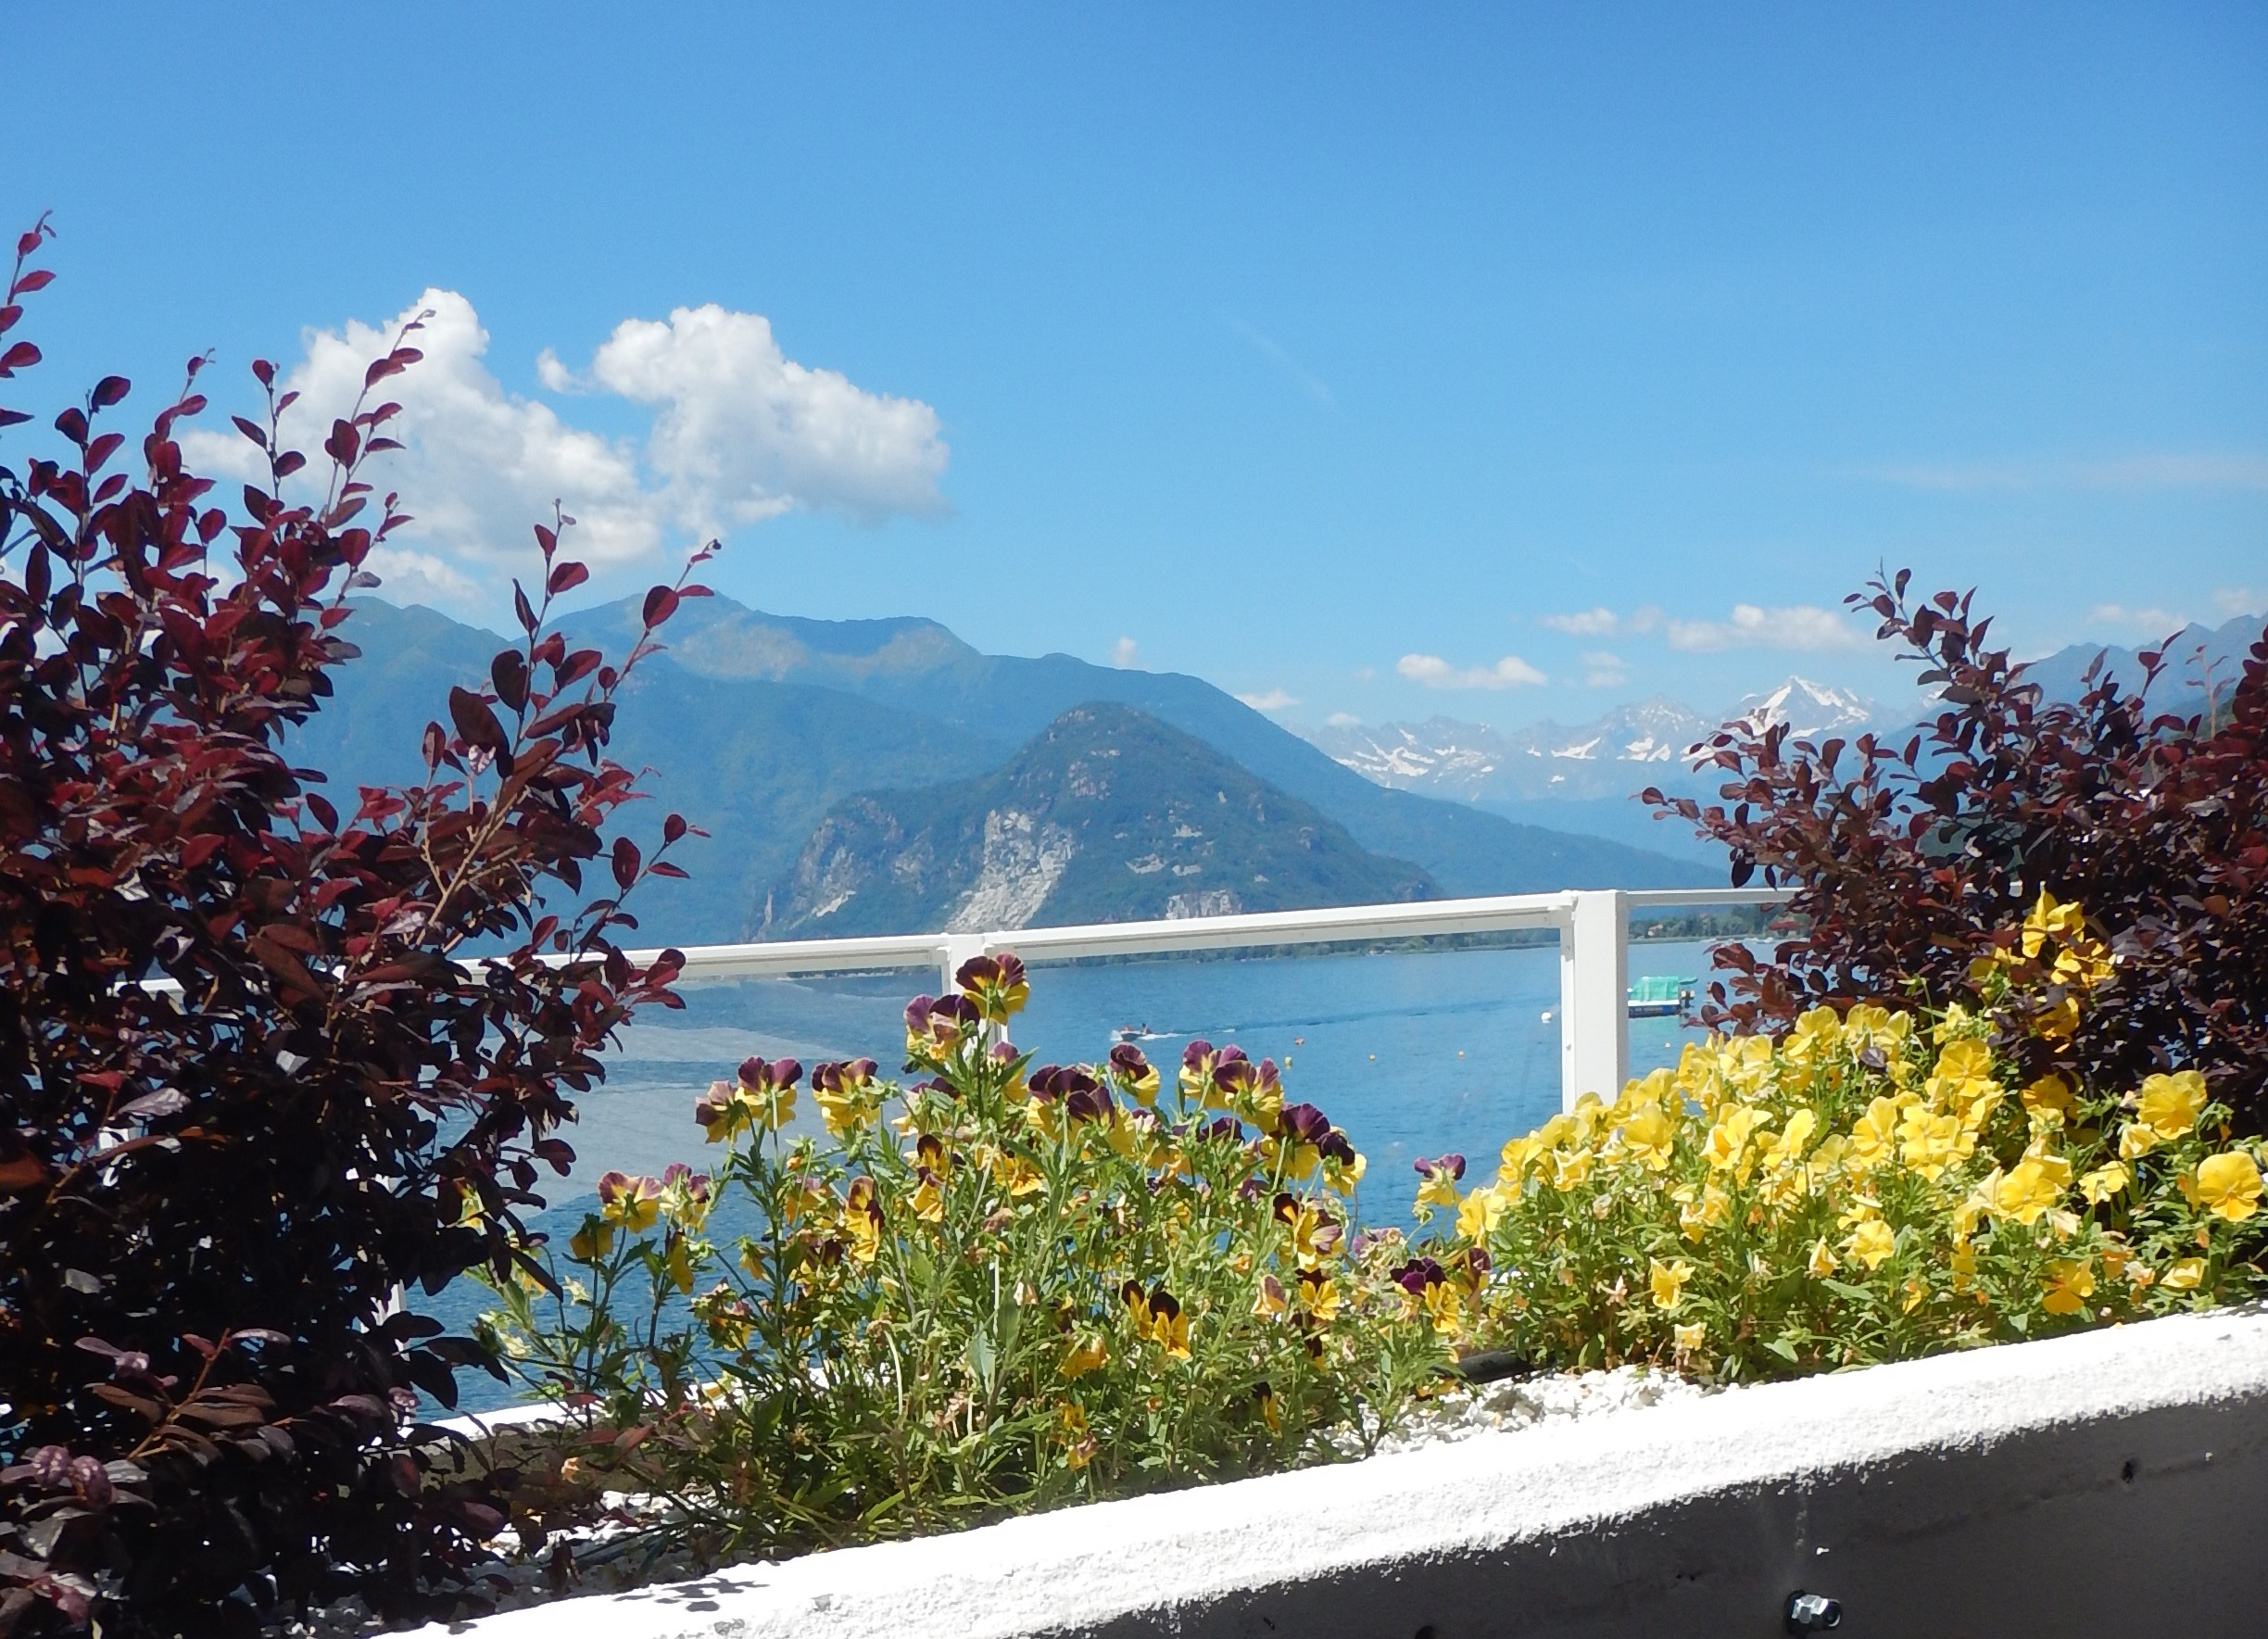 lunch on lake maggiore. Great lunch, great view!! Chocolate box scenery.